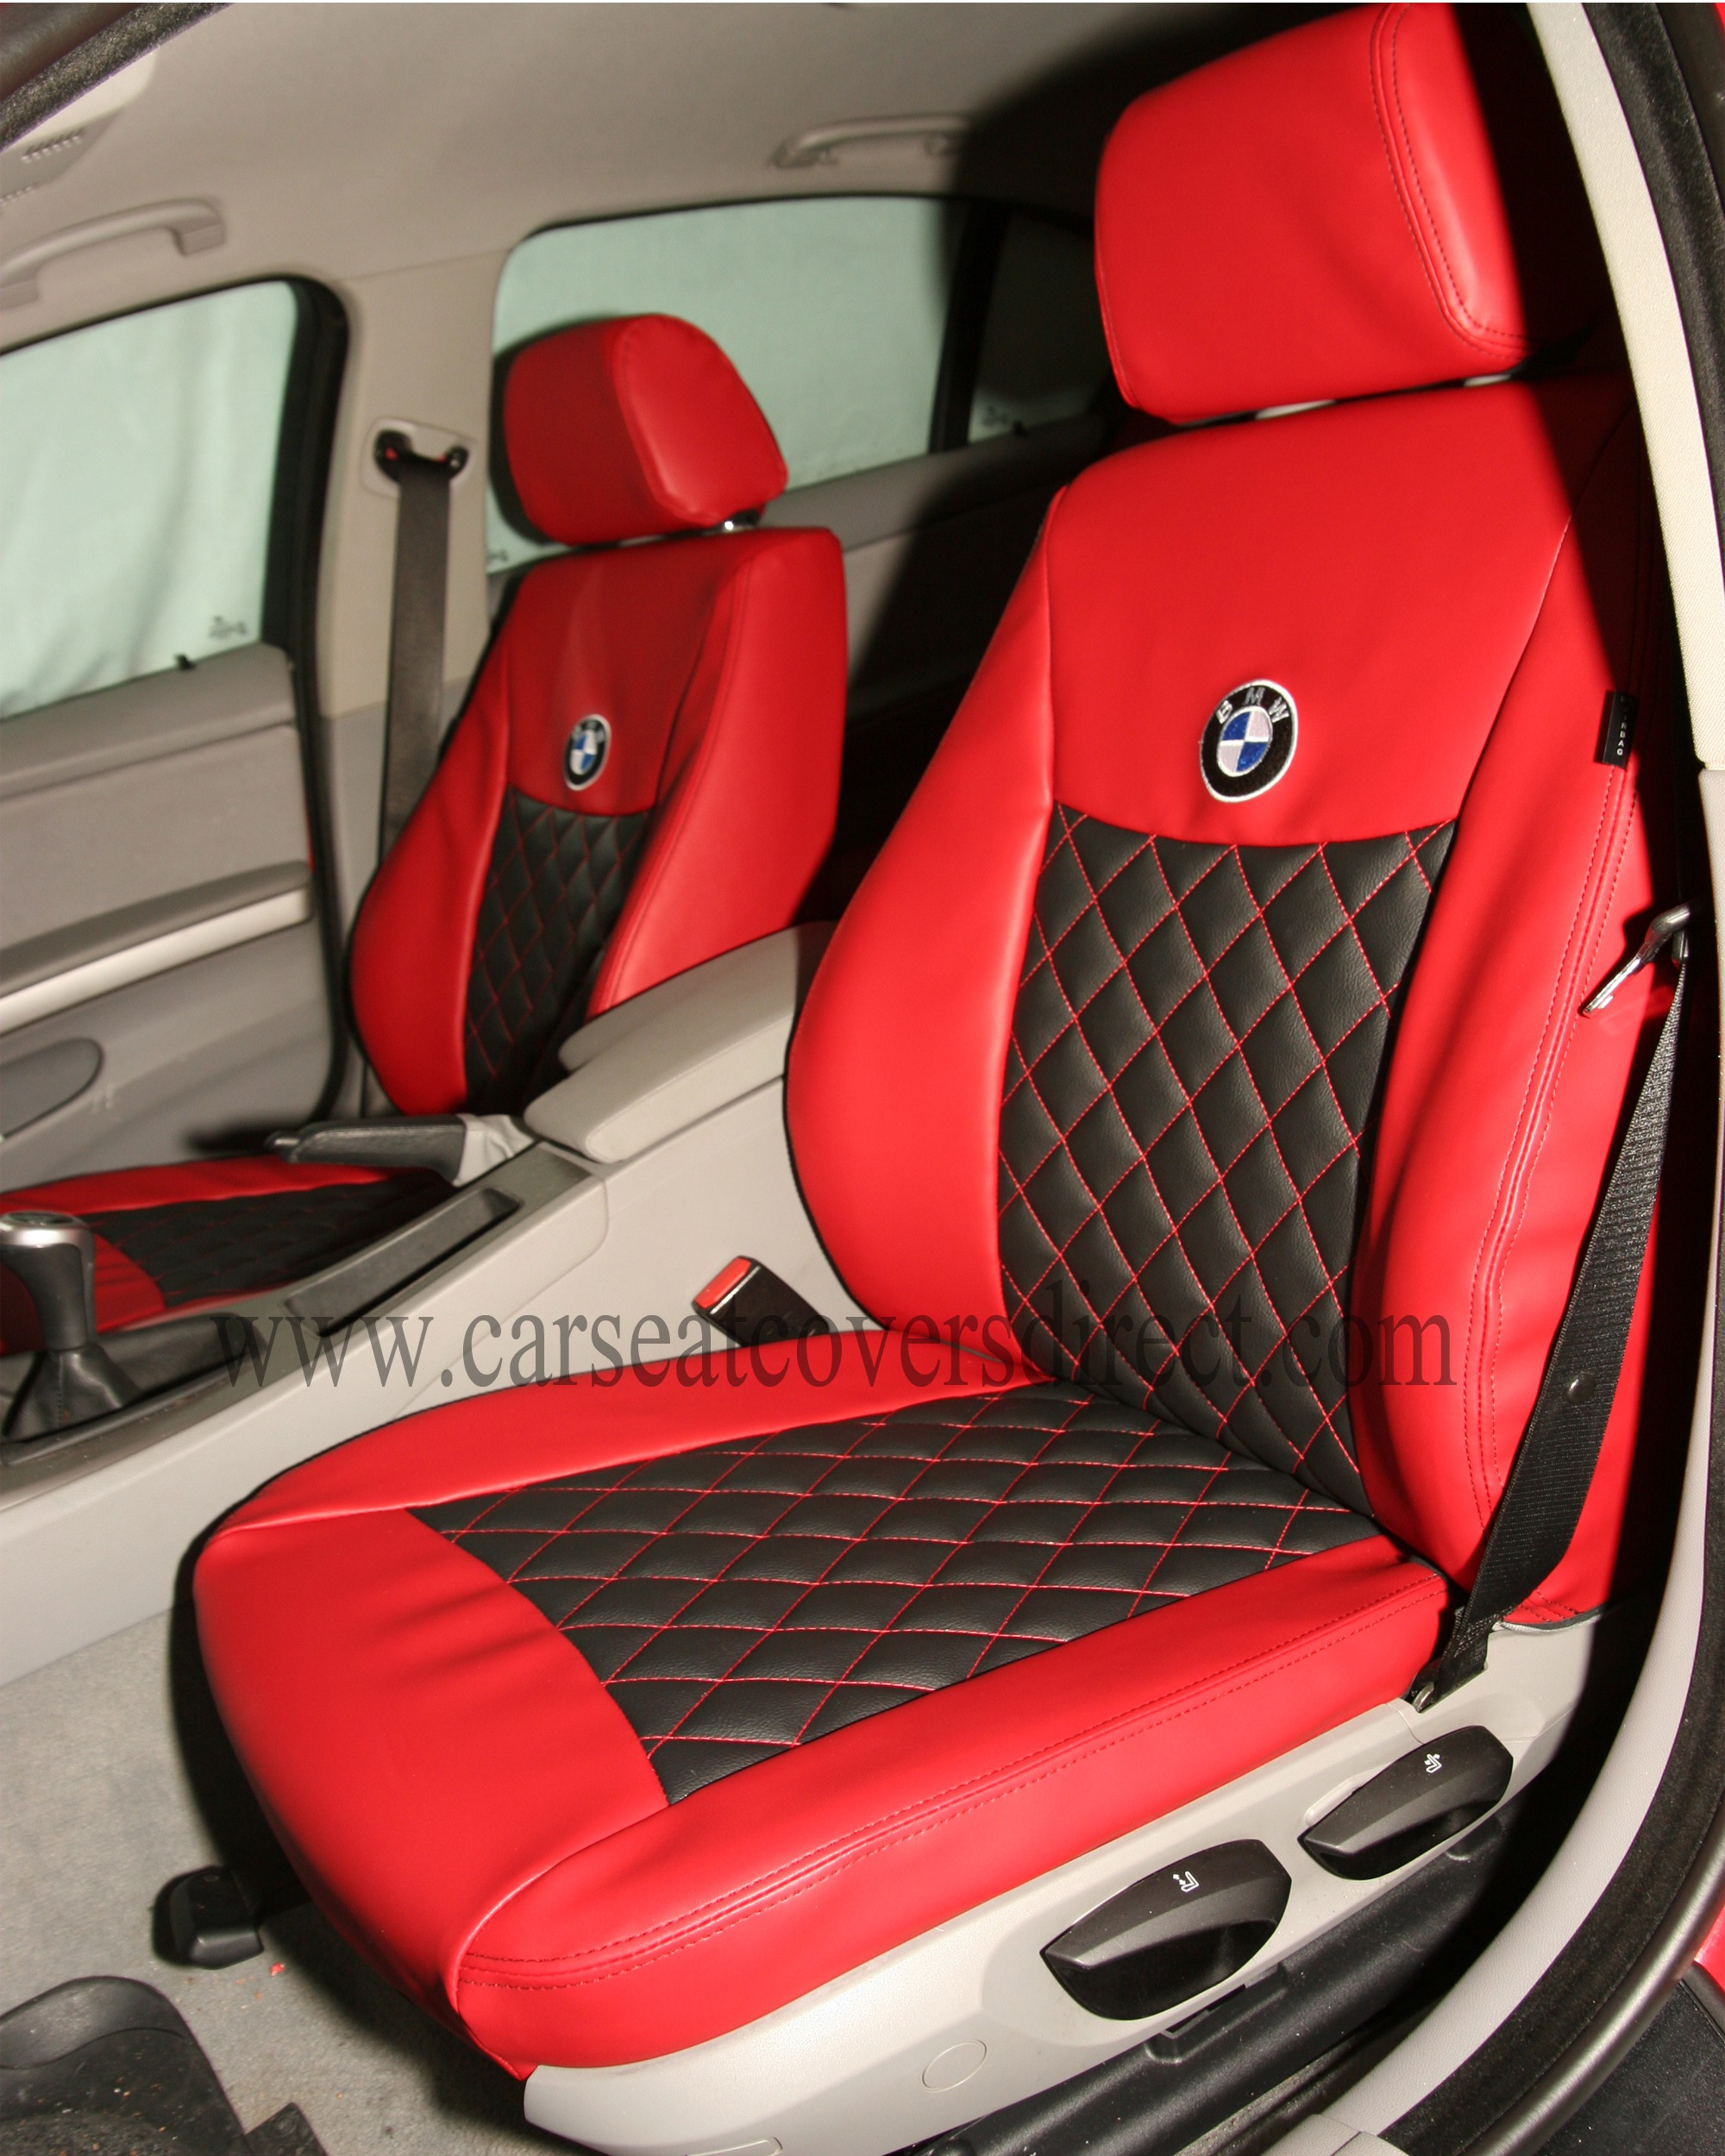 Bmw 3 Series Car Seat Covers Diamond Quilted Covers Car Seat Covers